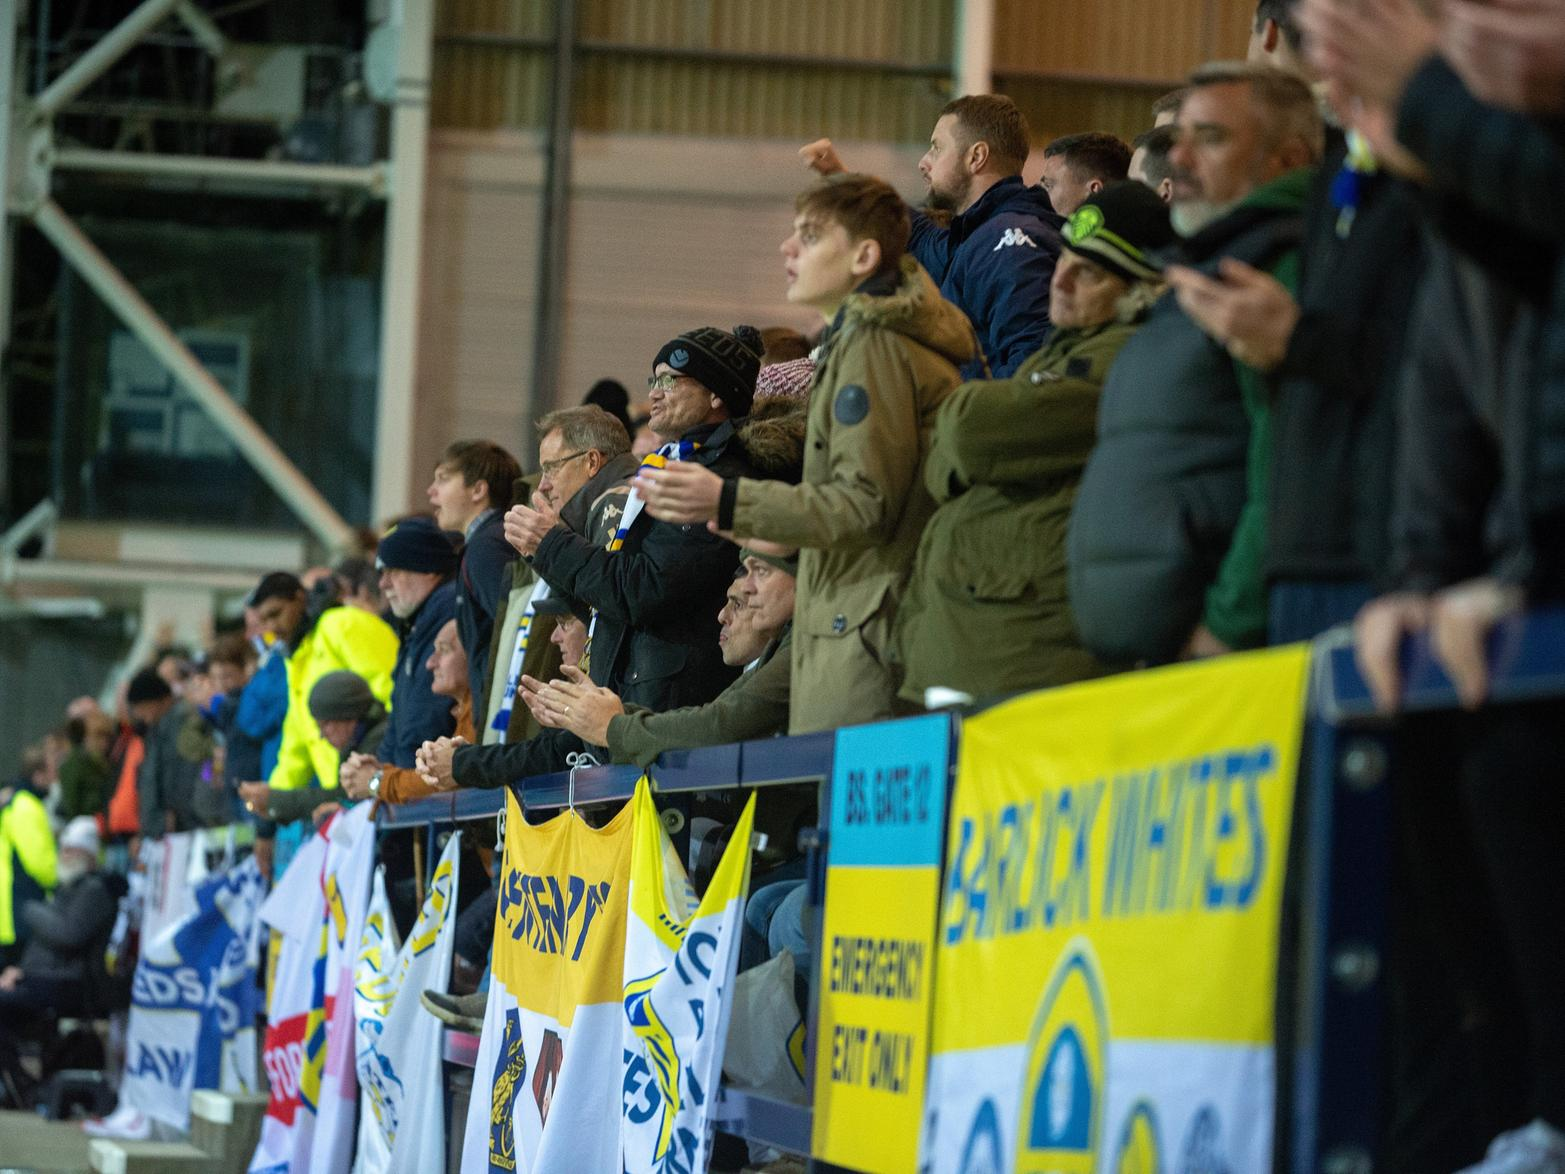 Preston North End 1 Leeds United 1 - Can you spot yourself in our fans gallery?